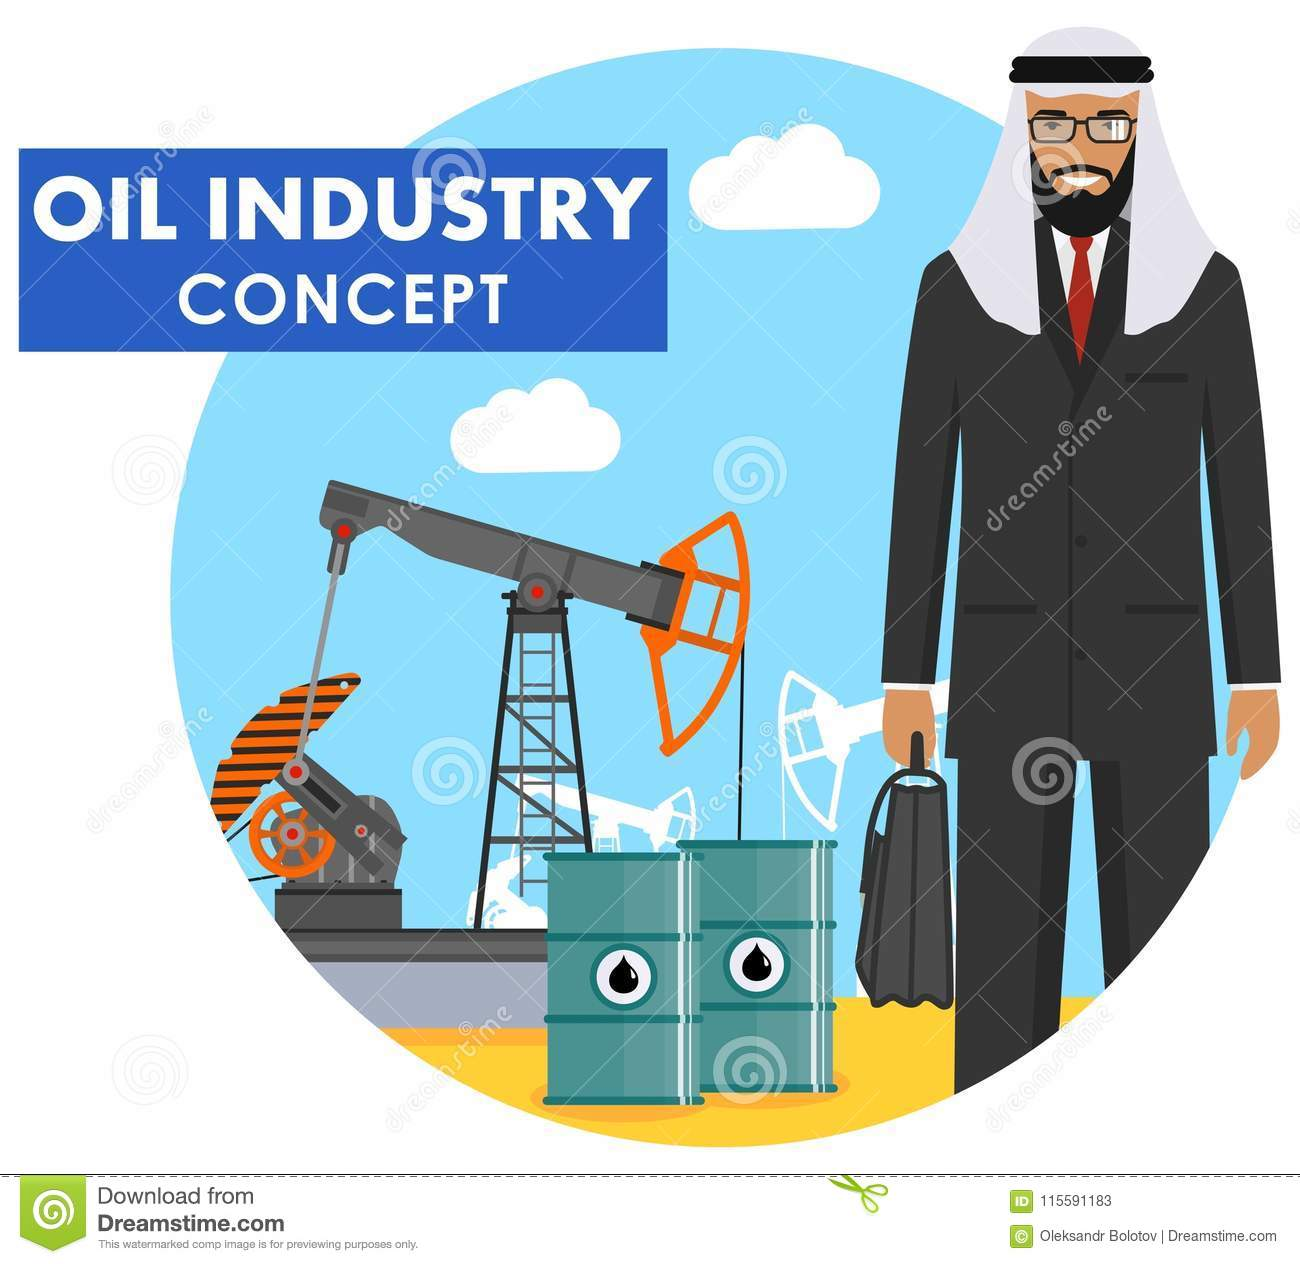 Oil industry concept. Detailed illustration of arab muslim businessman on background with oil pump and metal barrels